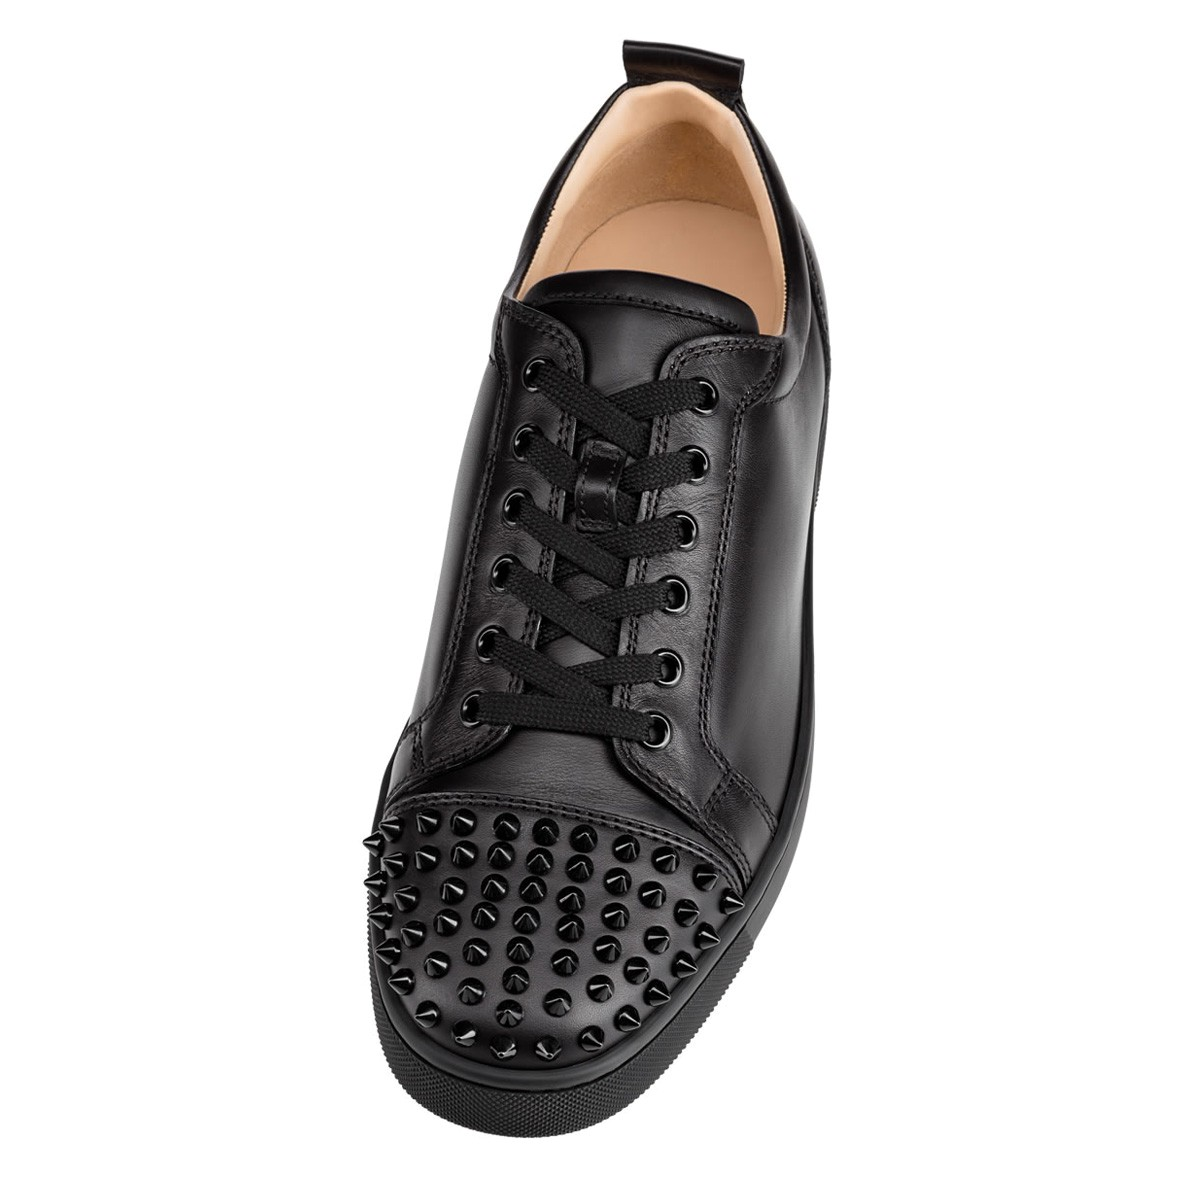 鞋履 - Louis Junior Spikes Flat - Christian Louboutin